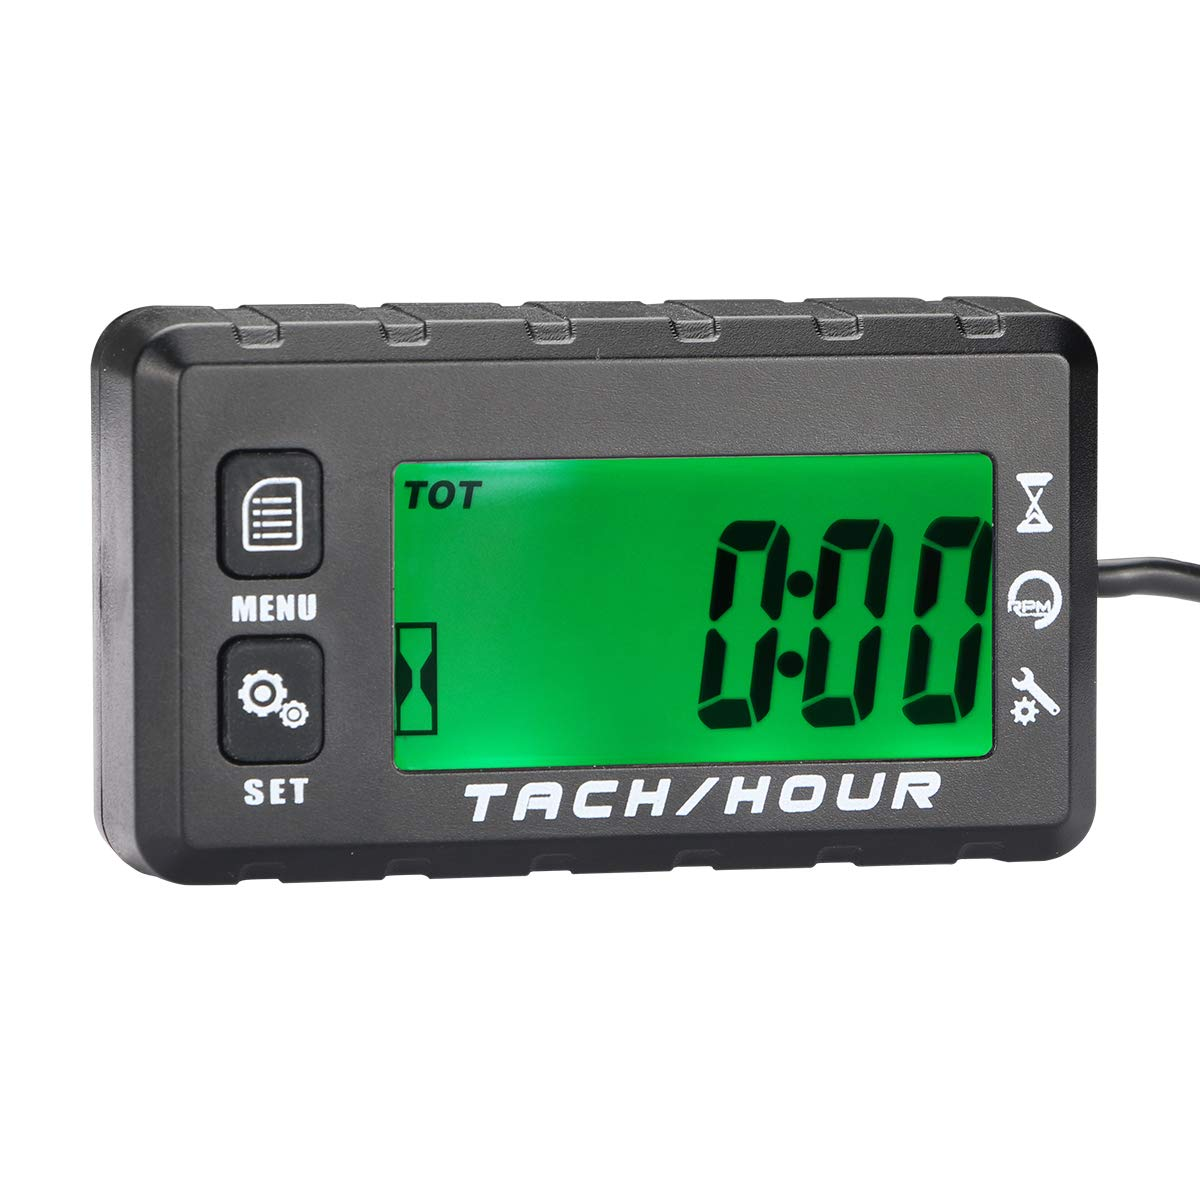 Replacement Parts Searon Digital Tachometer Hour Meter Tach